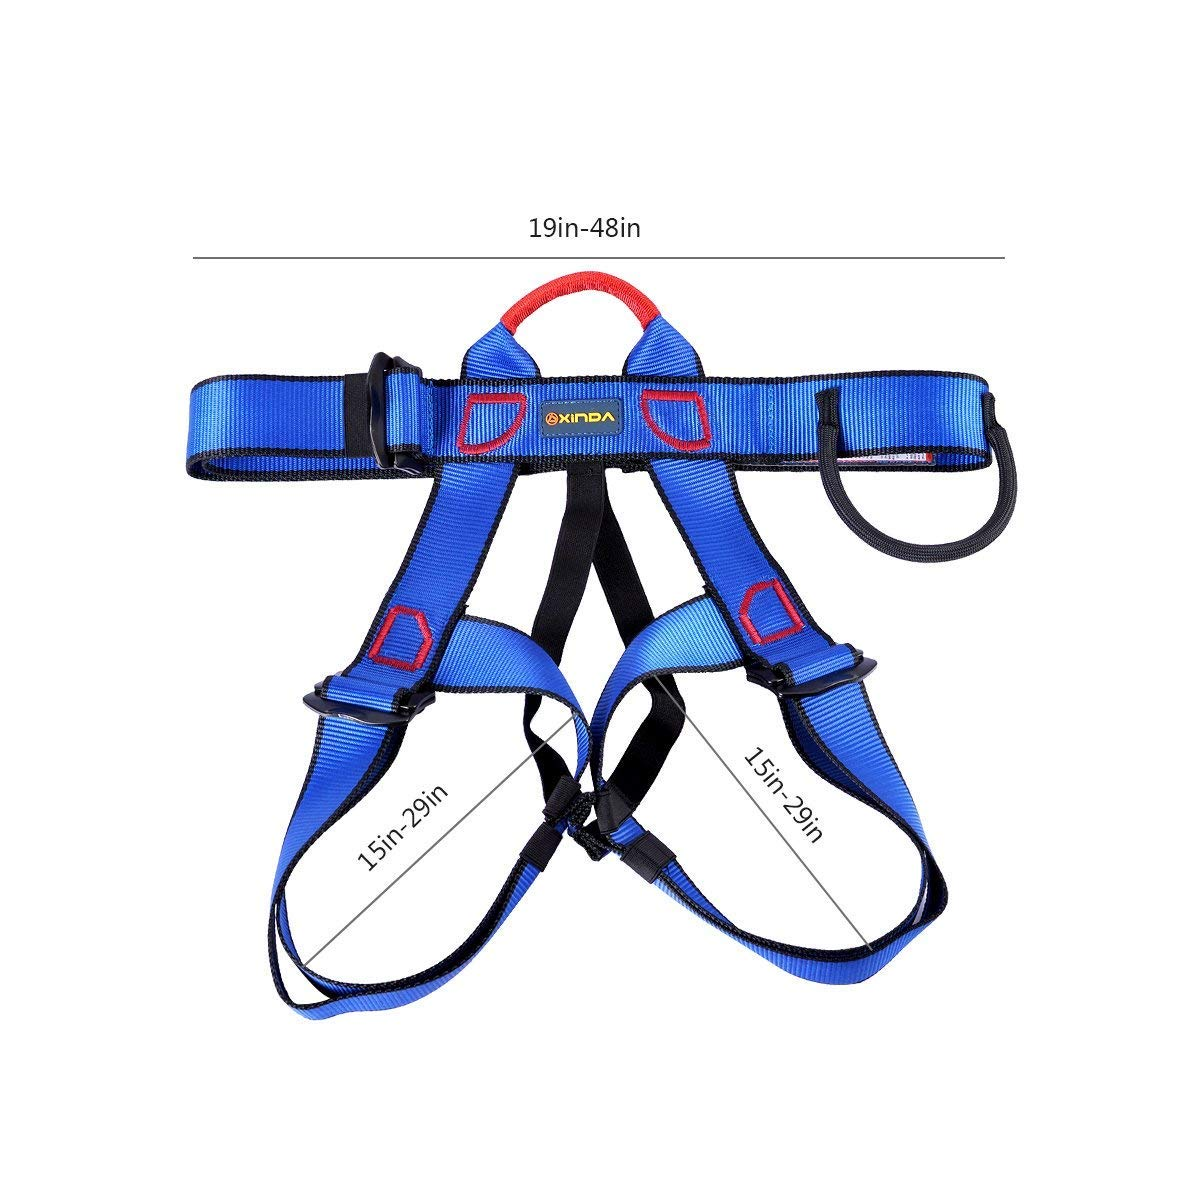 Yundxi Climbing Safety Harness Thicken Security Strap Safety Seat Protection Belt for Mountaineering Fire Rescuing Rock Climbing Rappelling Tree